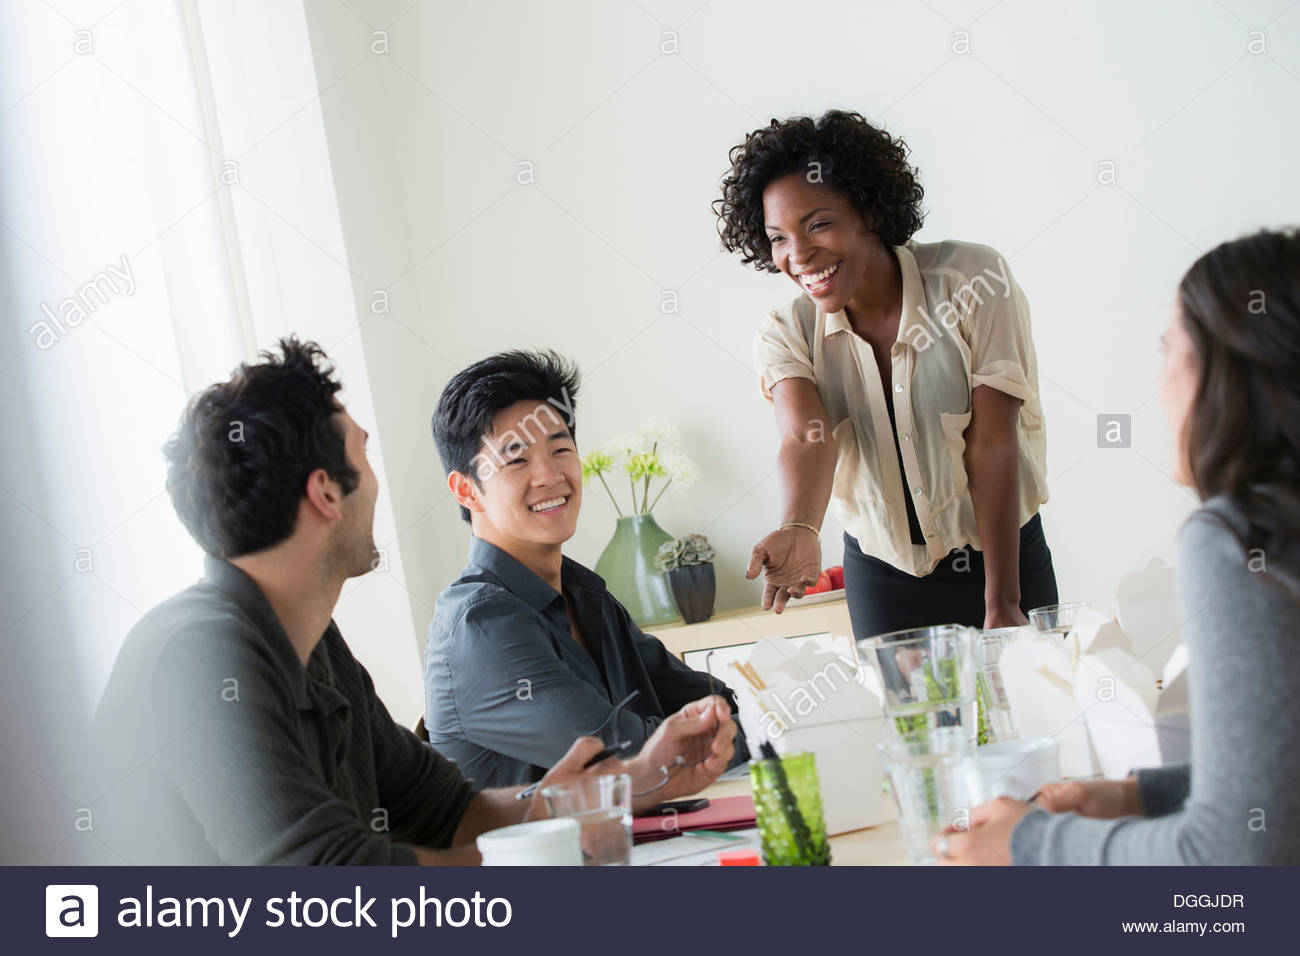 Office workers at informal meeting - Stock Image